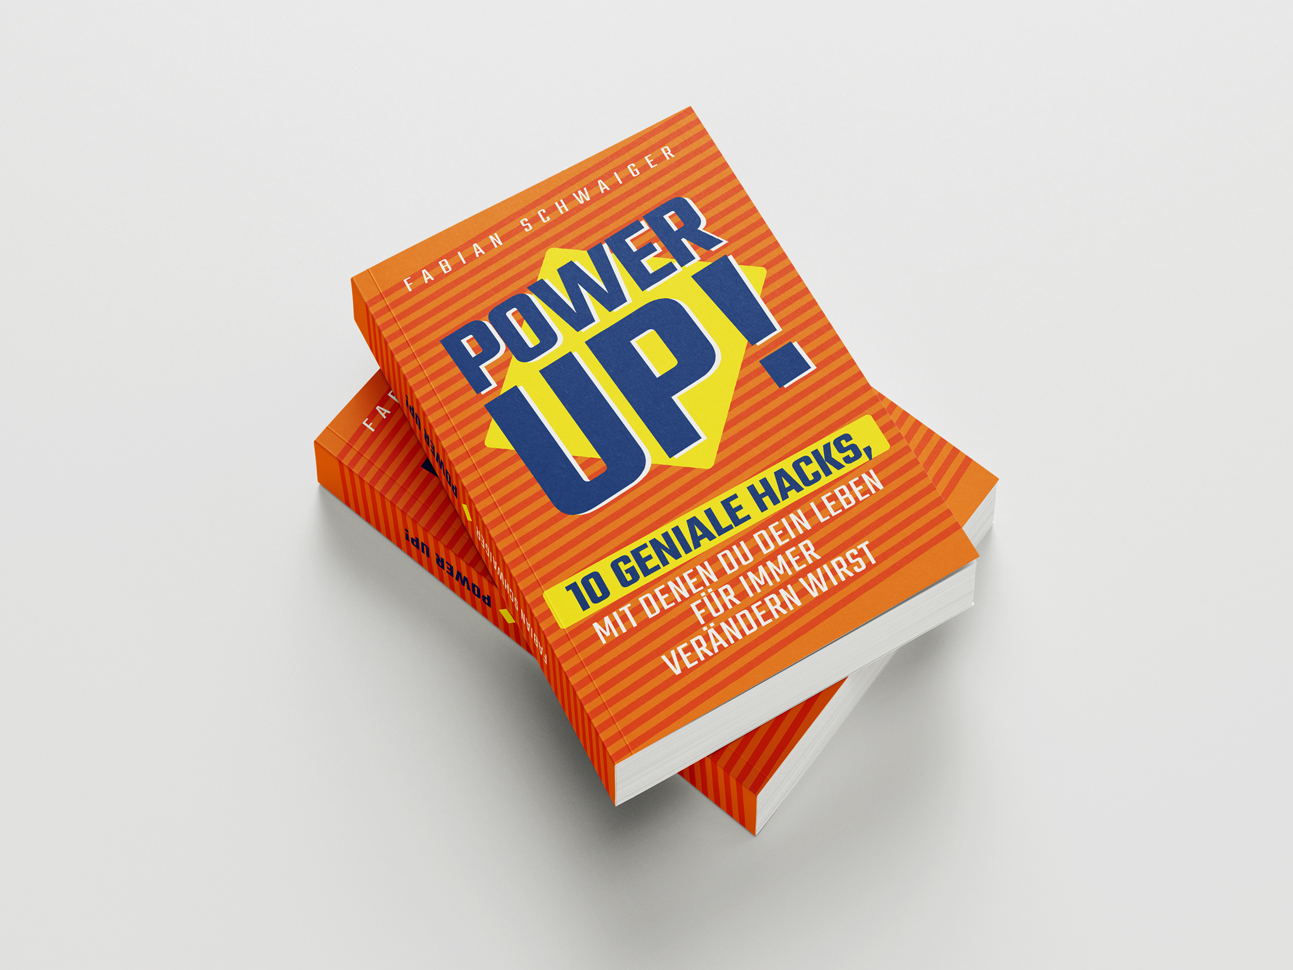 martin zech design, buchgestaltung, fabian schwaiger, power up, cover 2